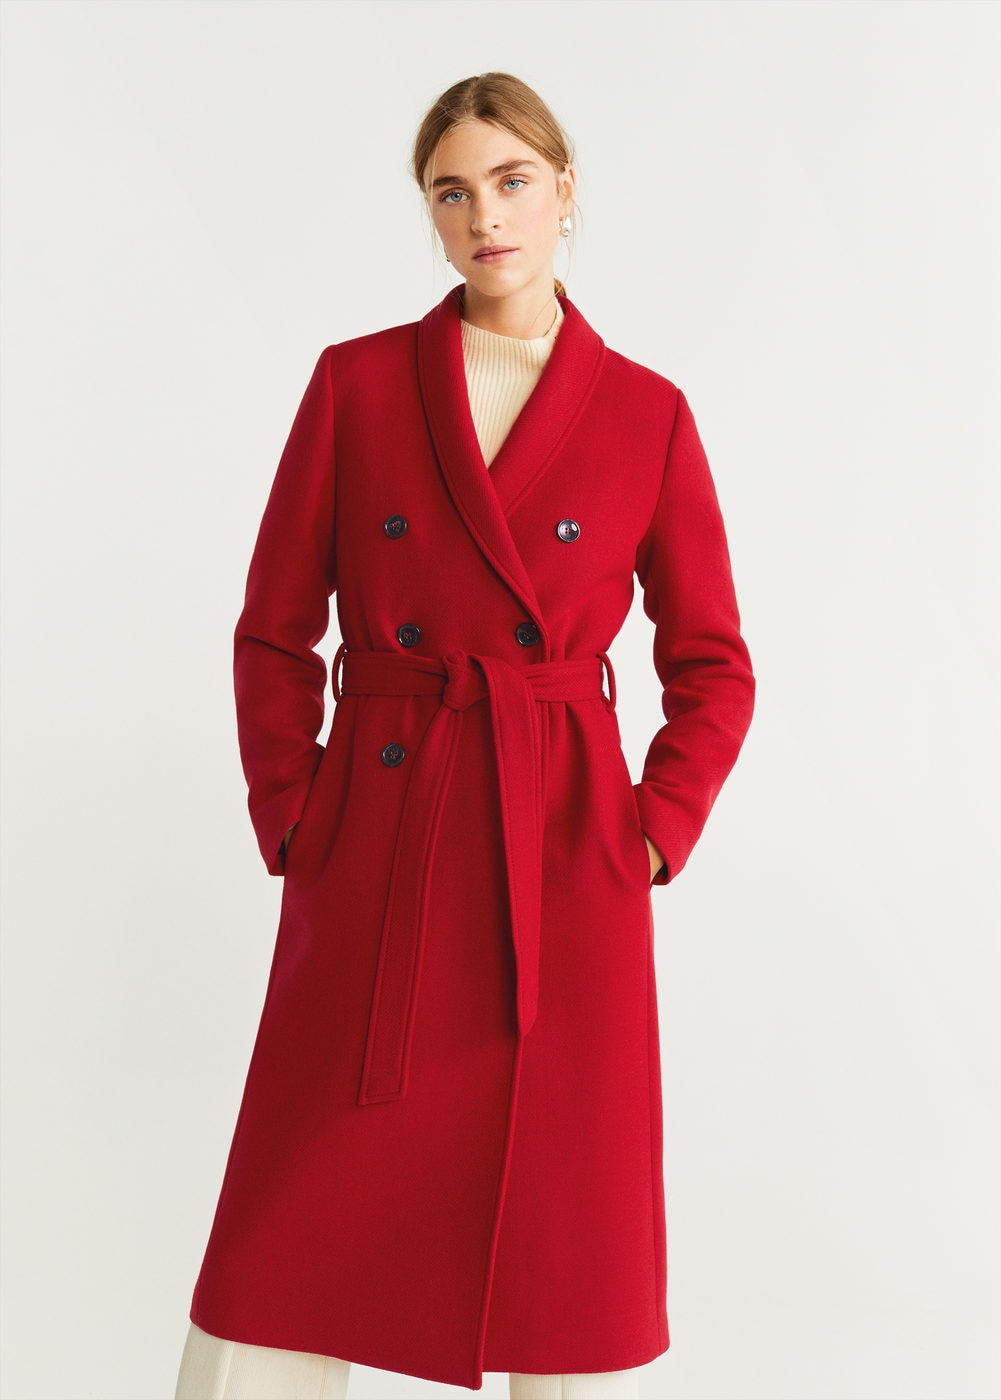 Double-breasted wool coat - Women | Mango United Kingdom